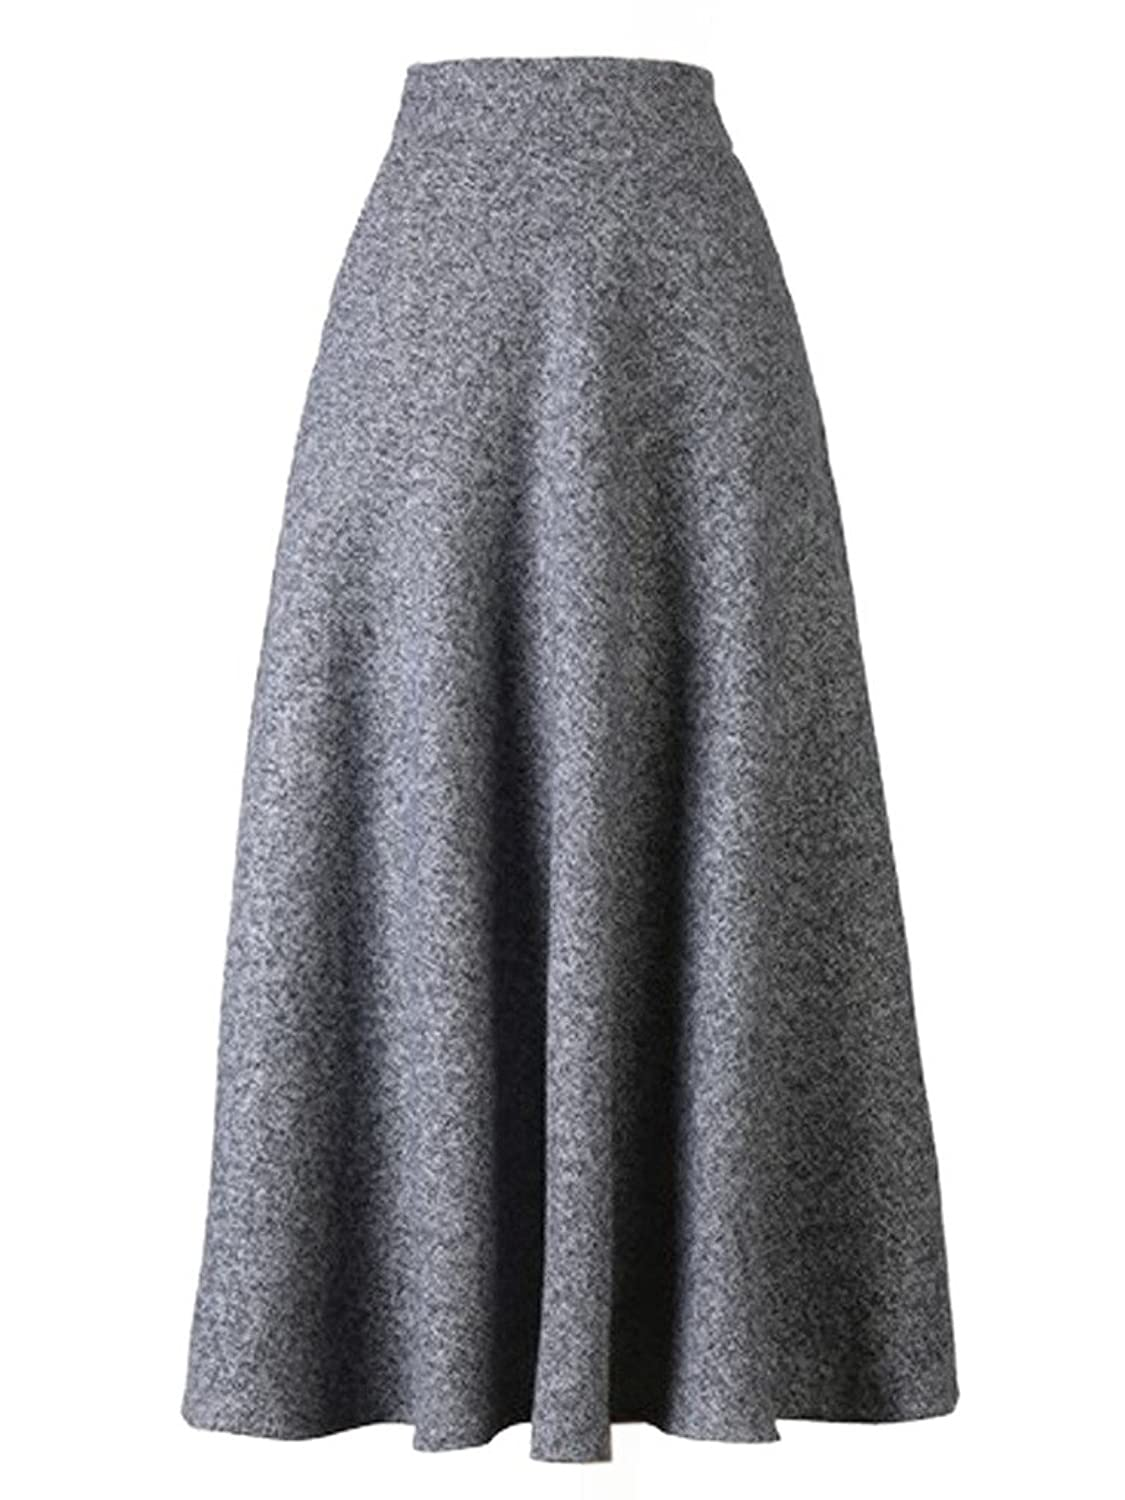 1920s Clothing Choies Womens High Waist A-line Flared Long Skirt Winter Fall Midi Skirt $33.99 AT vintagedancer.com